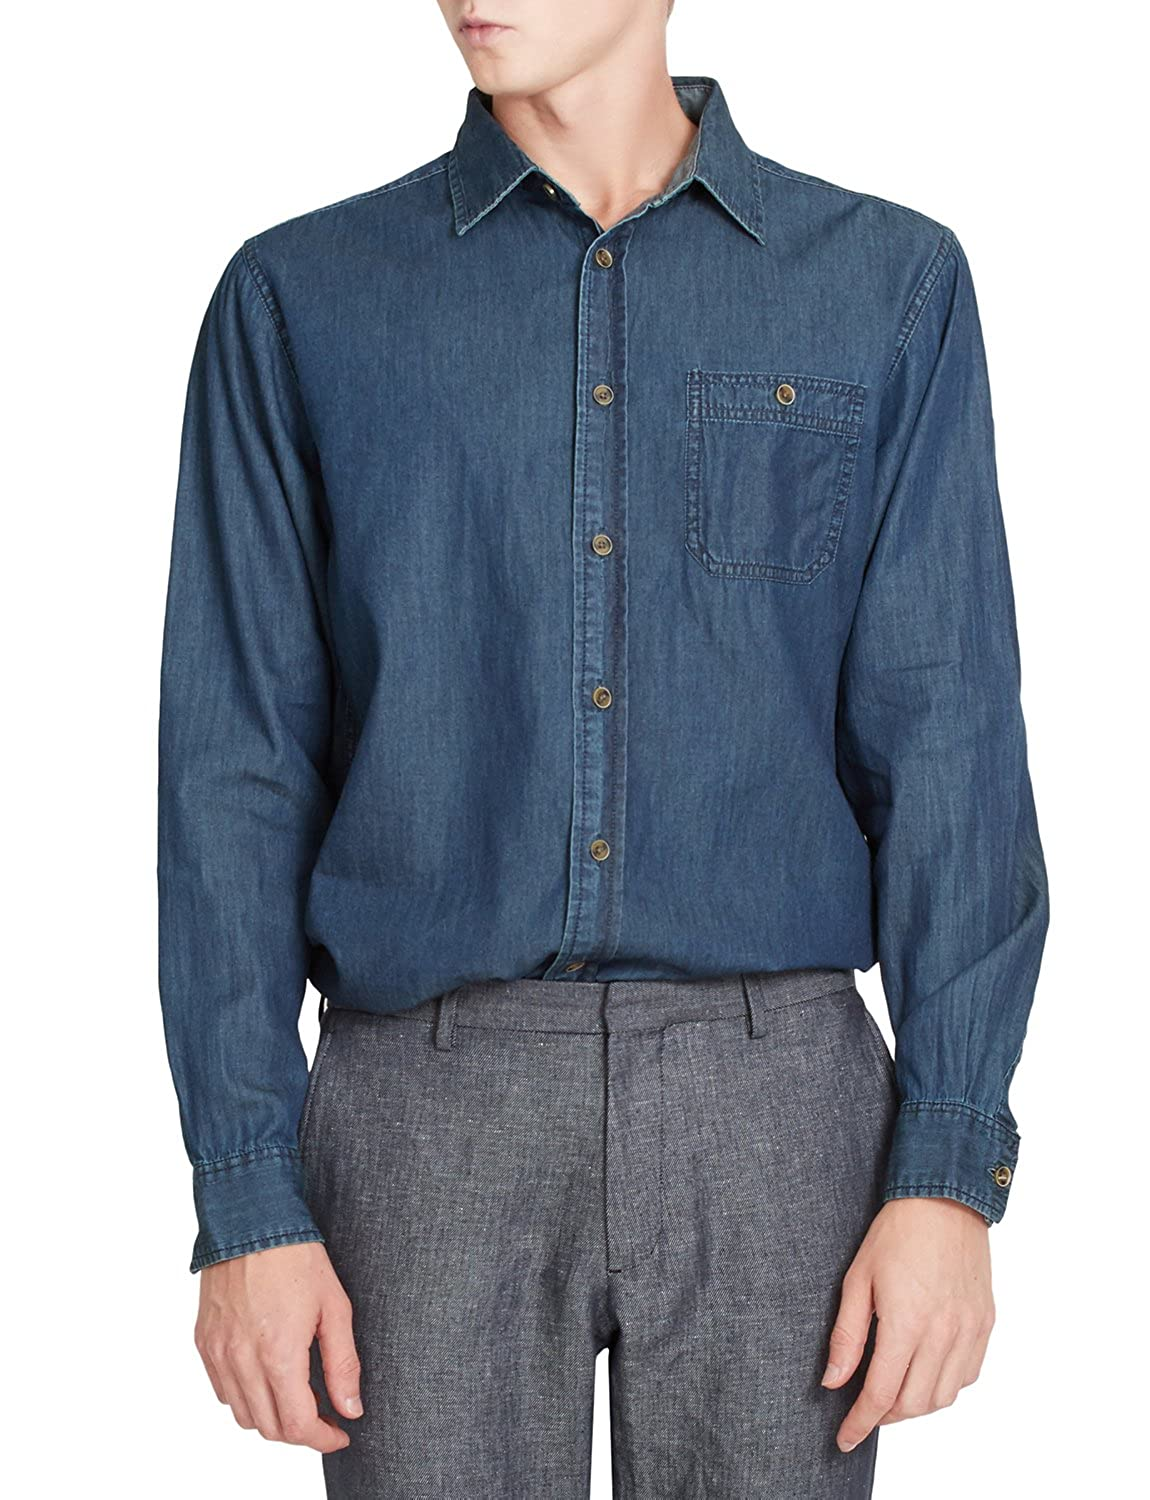 Men's Vintage Style Suits, Classic Suits LE3NO PREMIUM Mens Vintage Long Sleeve Button Down Work Denim Shirt $43.54 AT vintagedancer.com